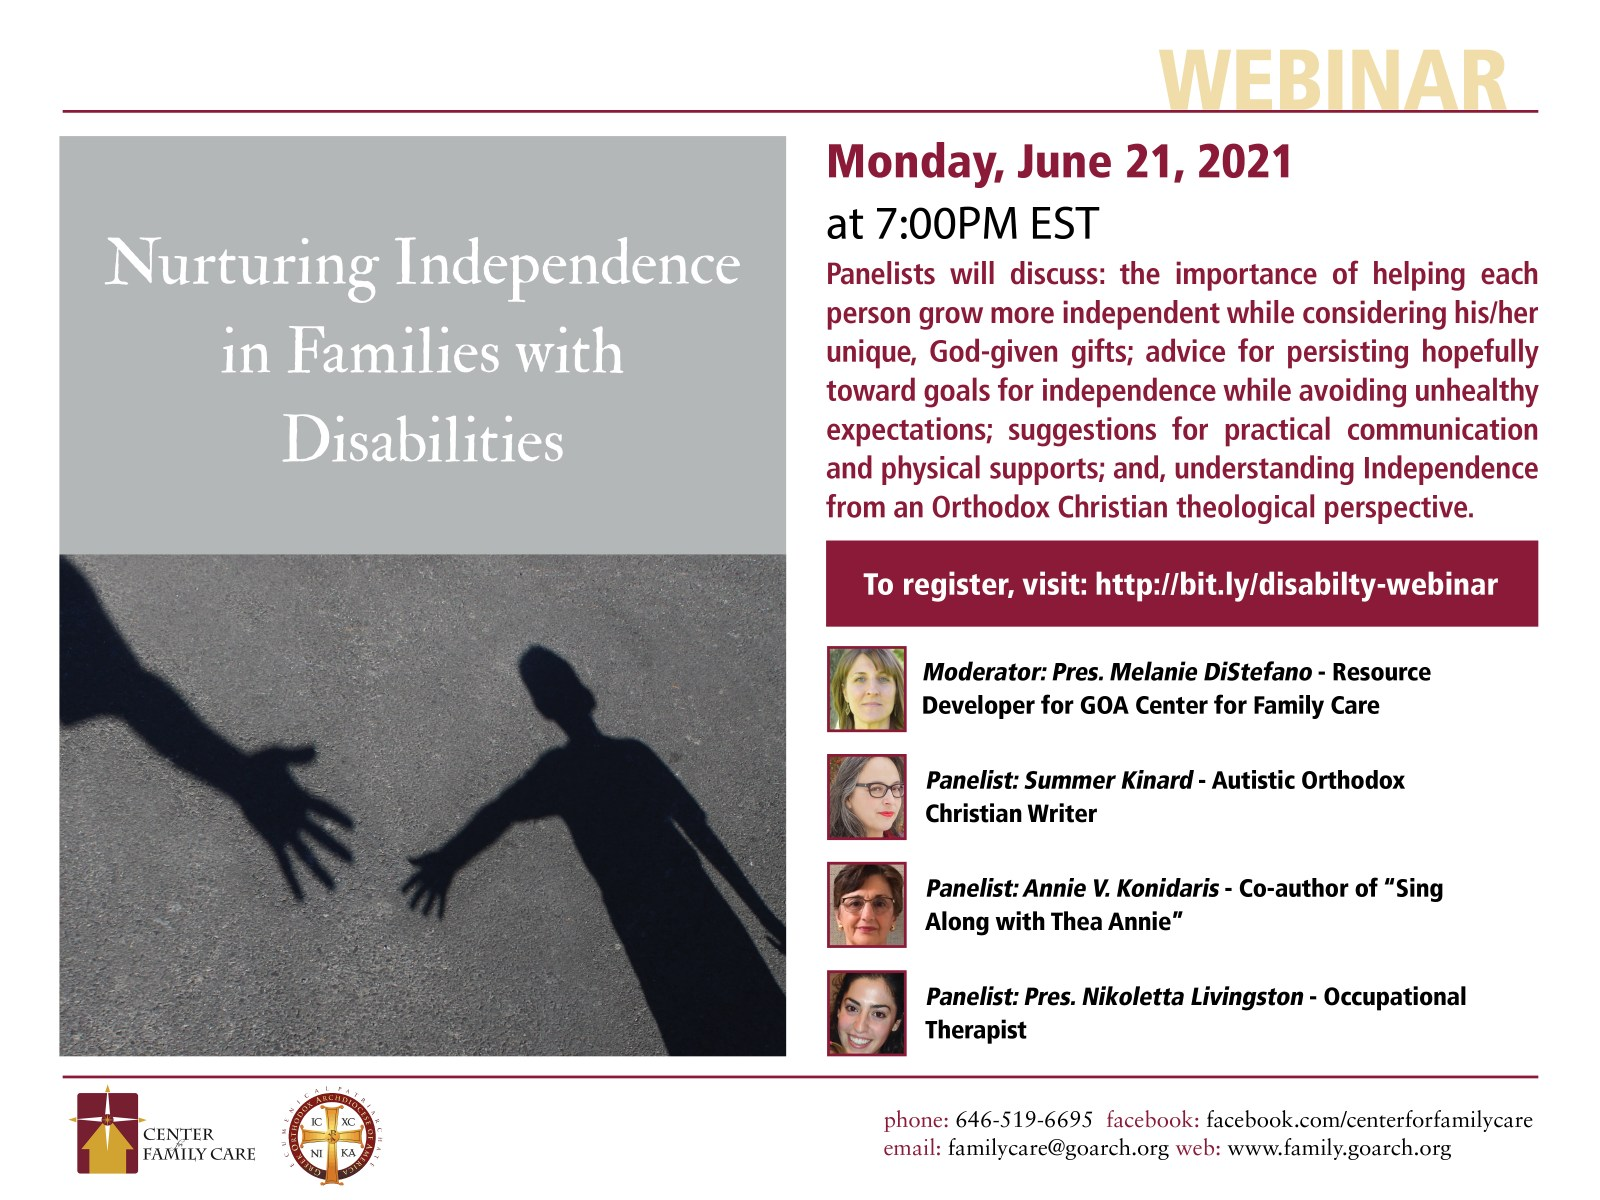 """So looking forward to being a part of this panel! We're discussing """"Nurturing Independence in Families with Disabilities"""" on Monday June 21, 2021 at 7pm Eastern Daylight Time. REGISTER FOR THIS FREE WEBINAR HERE: http://bit.ly/disability-webinar-1 Alt Text: Webinar graphic with the shadows of a child reaching out for an adult hand. """"Nurturing Independence in Families with Disabilities."""" Monday, June 21, 2021 at 7pm ET Panelists will discuss the importance of helping each person grown more independent while considering his/her unique, God-given gifts; advice for persisting hopefully toward goals for independence whiel avoiding unhealthy expectations; suggestions for practical communication and physical supports; and understanding independence from an Orthodox Christian theological perspective. To register, visit: http://bit.ly/disability-webinar-1 Moderator: Pres. Melanie DiStefano-Resource Developer for GOA Center for Family Care Panelist: Summer Kinard- Autistic Orthodox Christian {Theology and Accessibility} Writer Panelist: Annie V. Konidaris - Co-author of """"Sing Along with Thea Annie"""" Panelist: Pres. Nikoletta Livingston - Occupational Therapist Greek Orthodox Archidiocese Center for Family Care. Phone: 646-519-6695. Facebook: Facebook.com/centerforfamilycare email: familycare@goarch.org web: family.goarch.org"""